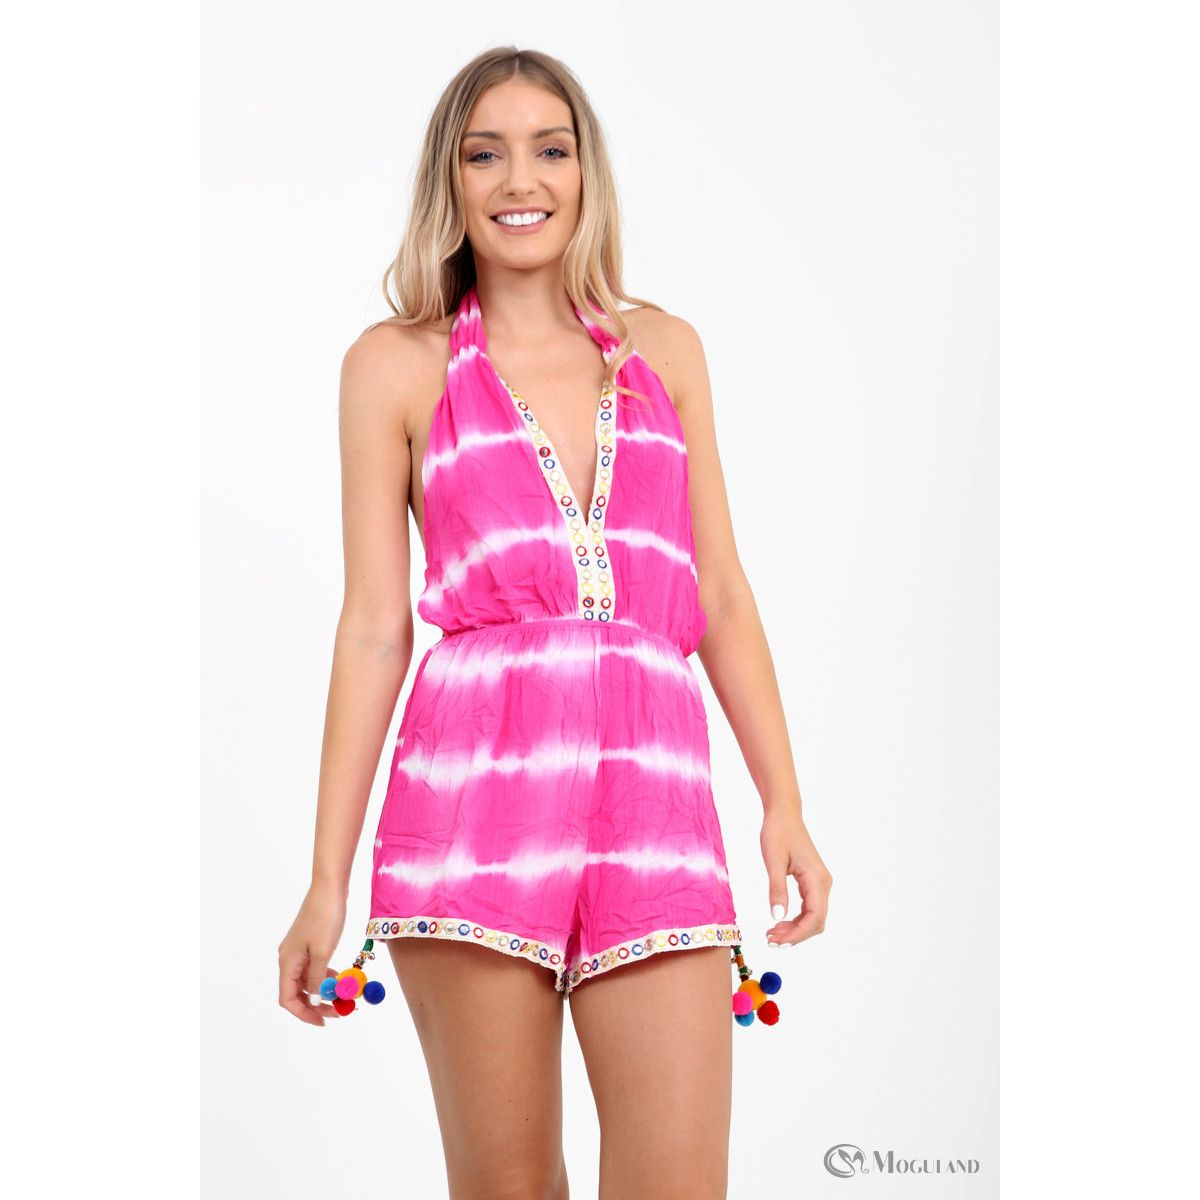 acf1181d4c Ladies pink tie-dye halterneck playsuit wholesale - Women s Wholesale  Clothing Supplier